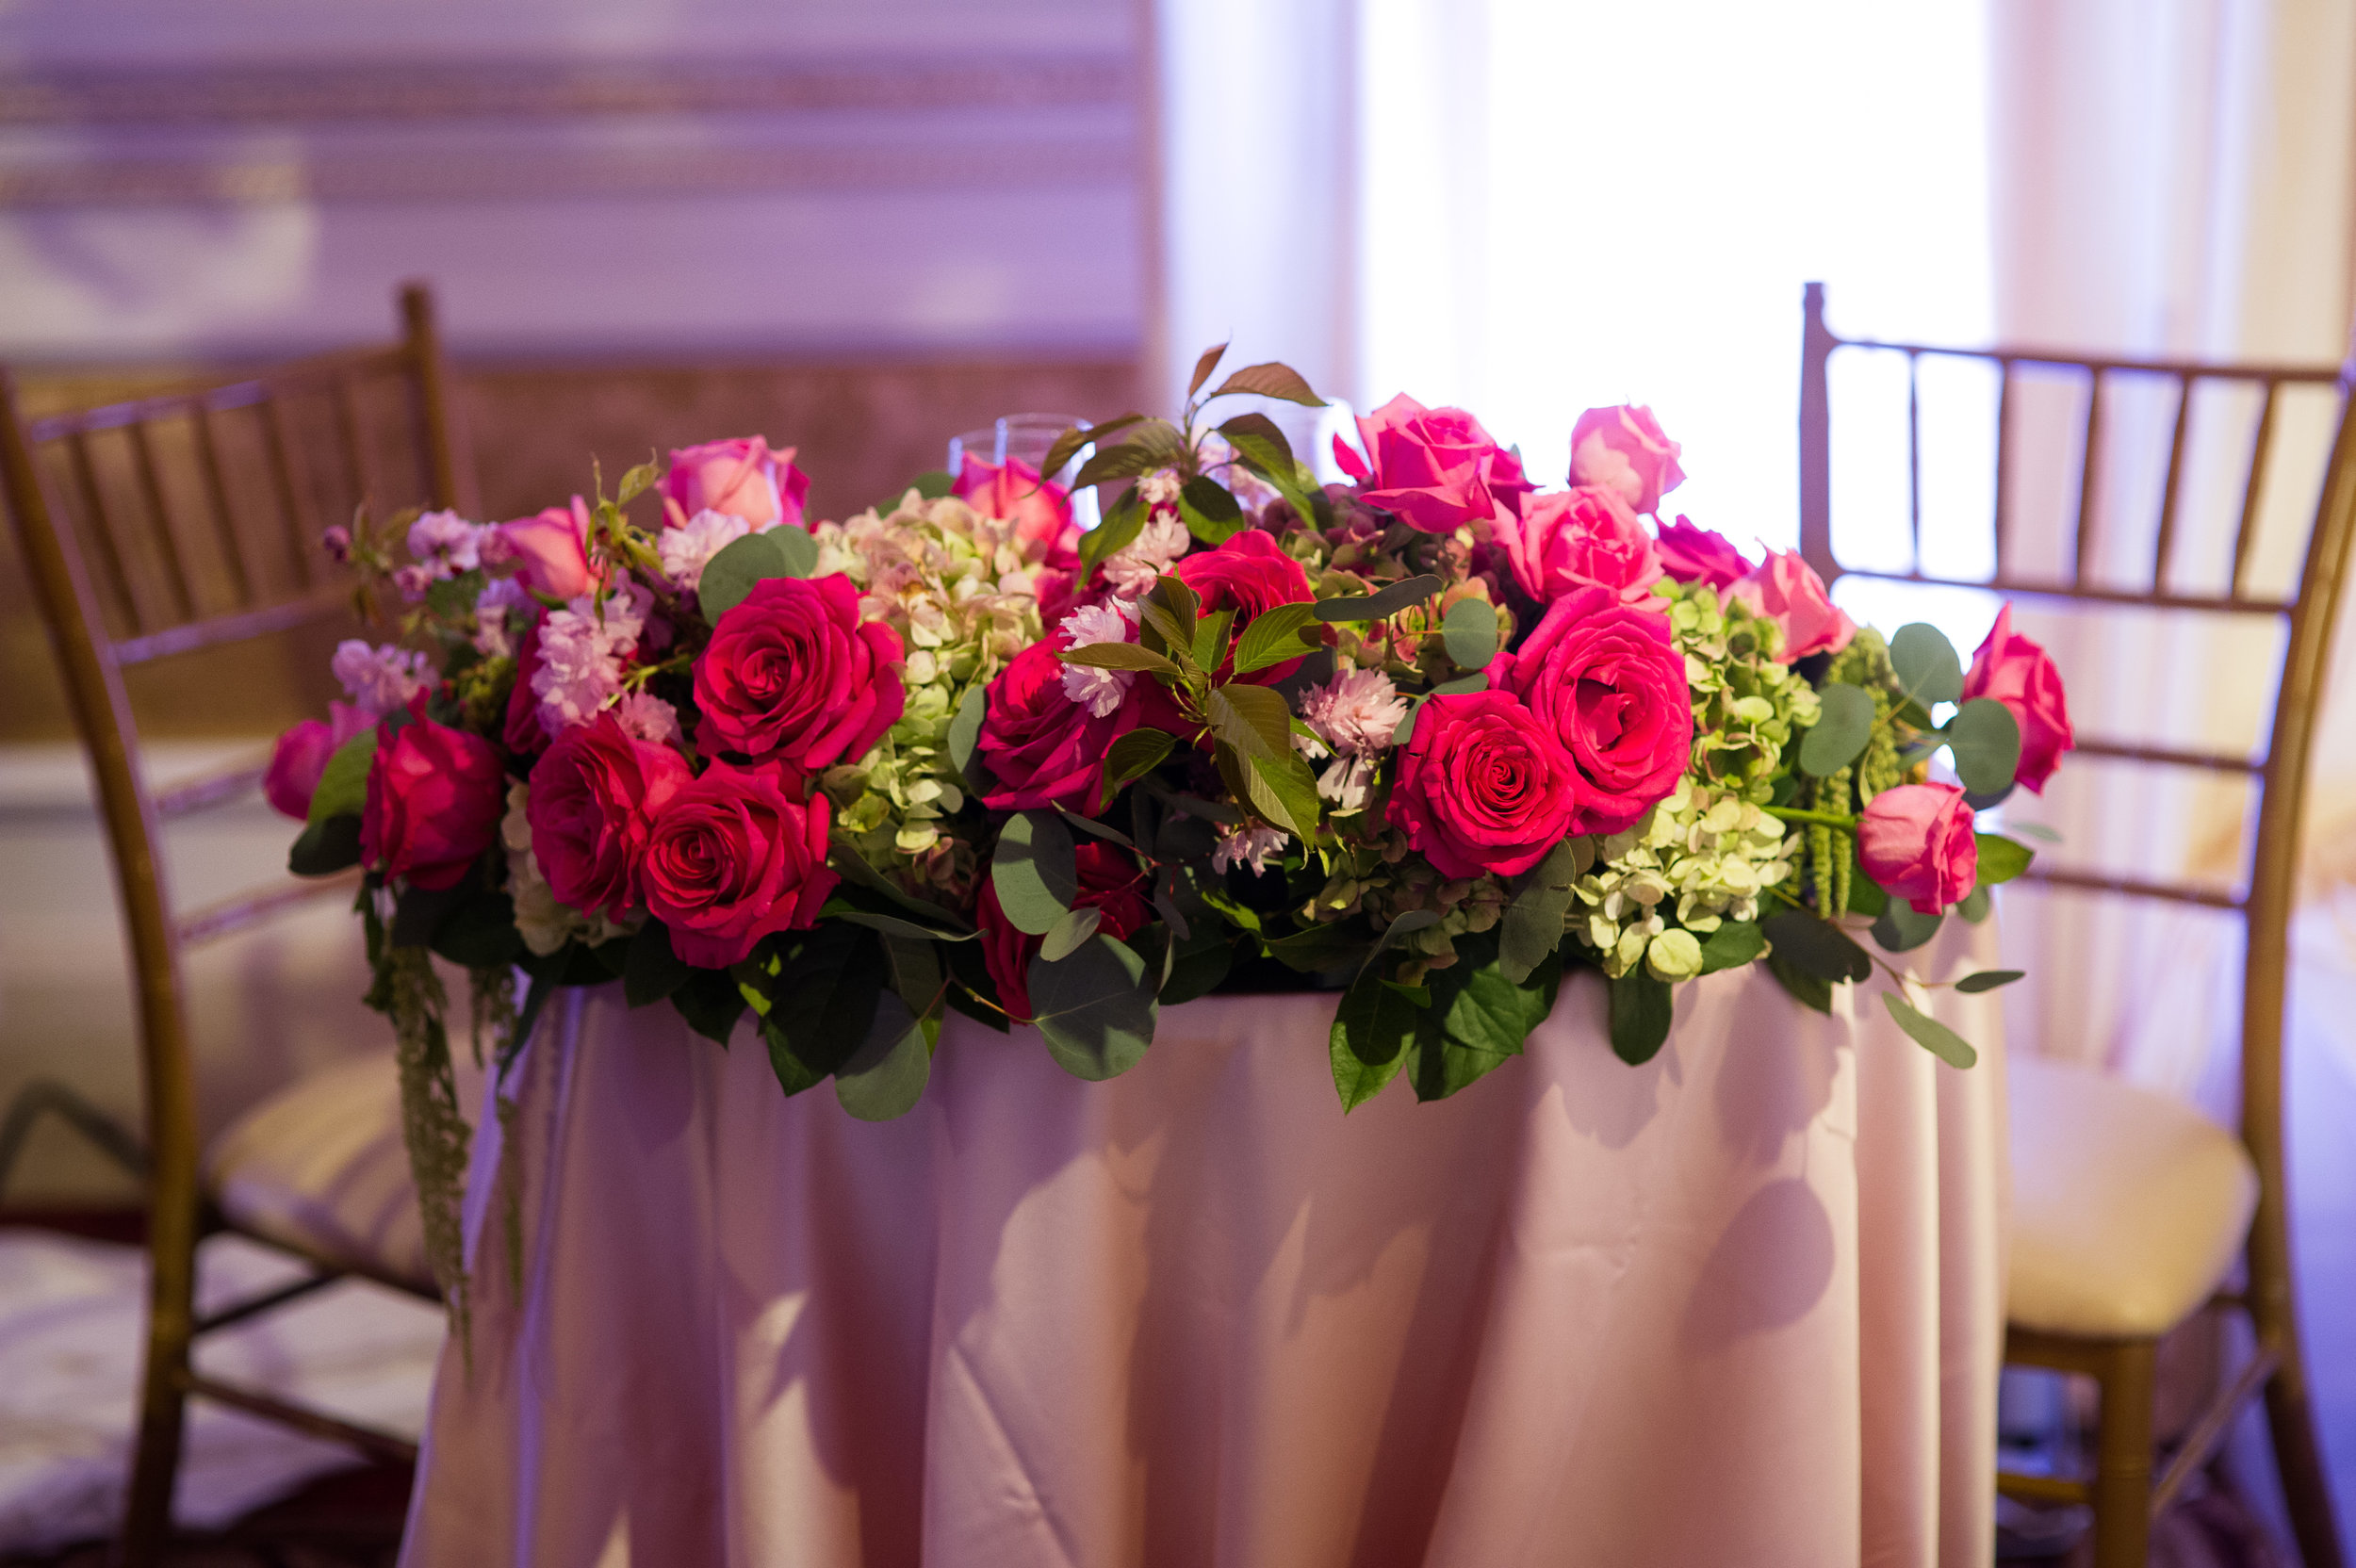 sweetheart table with floral centerpiece.JPG